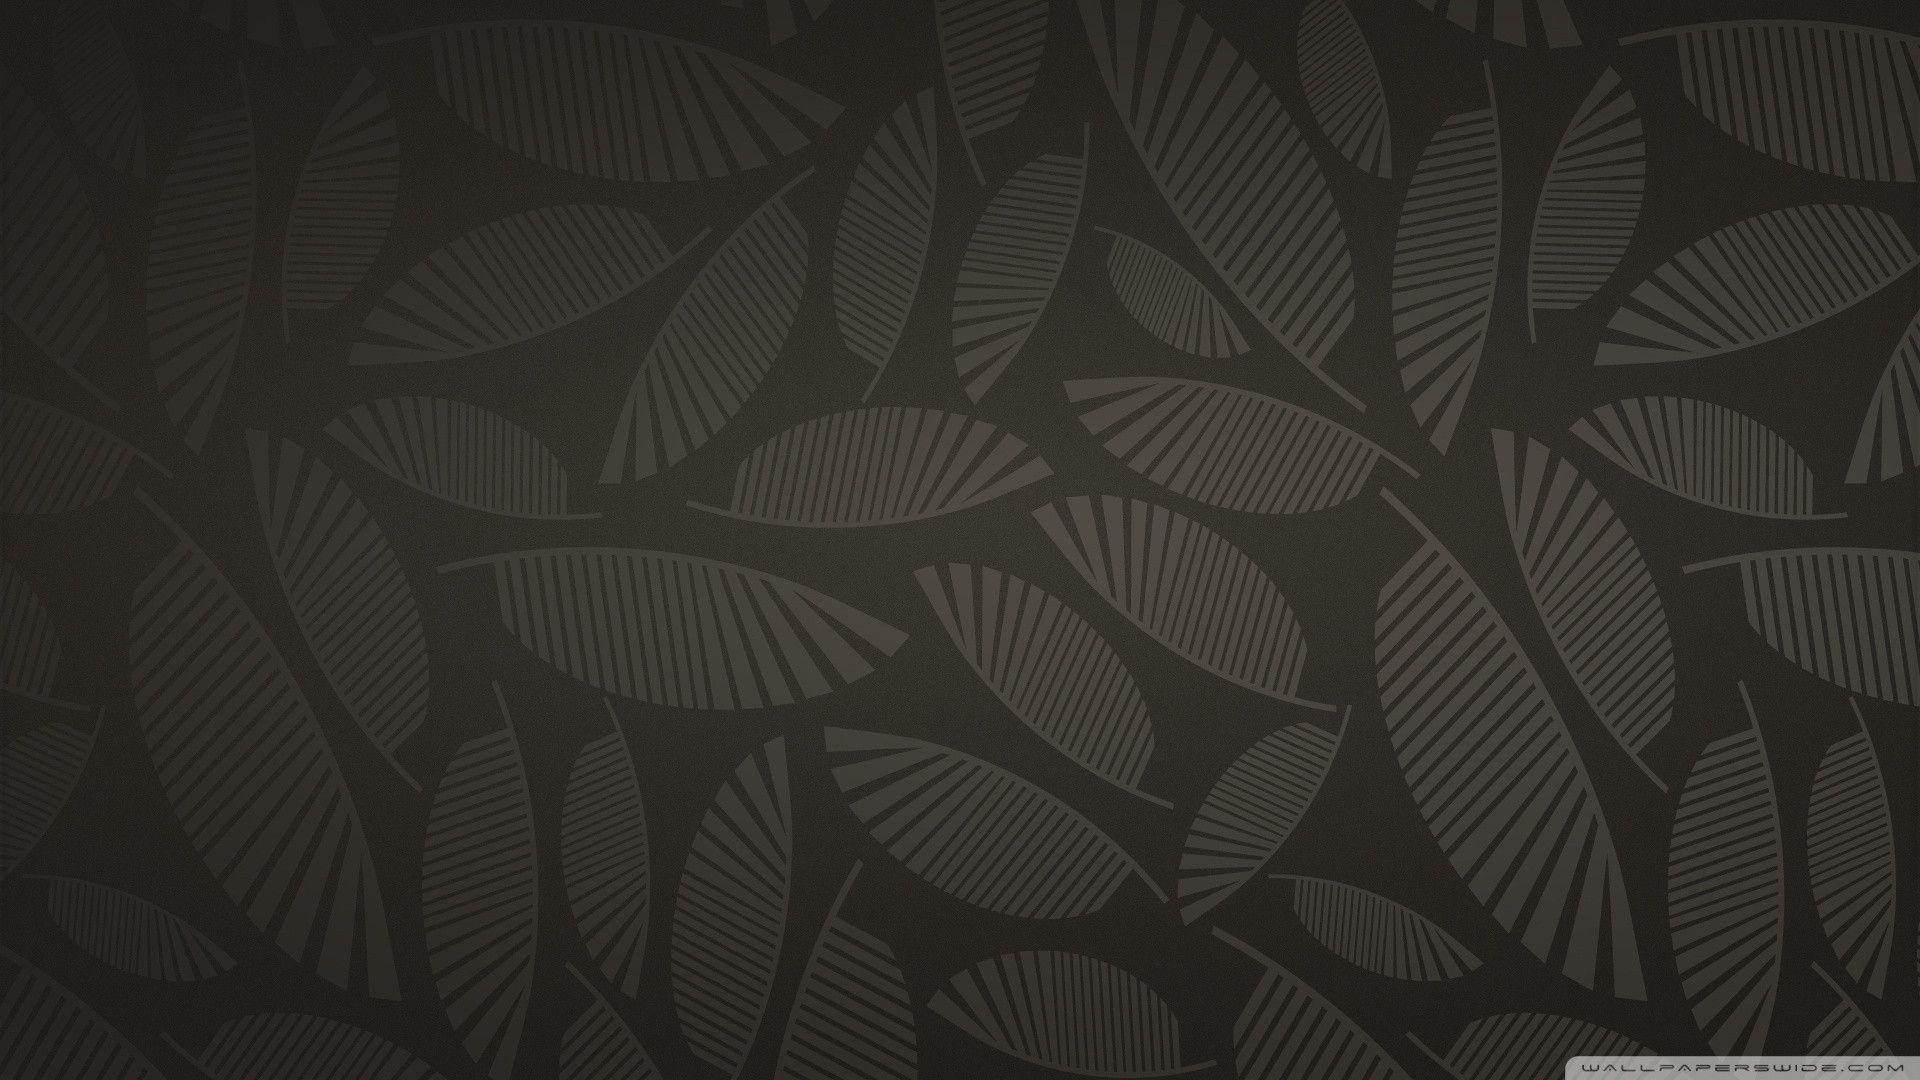 computer-wallpaper-patterns-pictures-5 Patterns HD free wallpapers ...